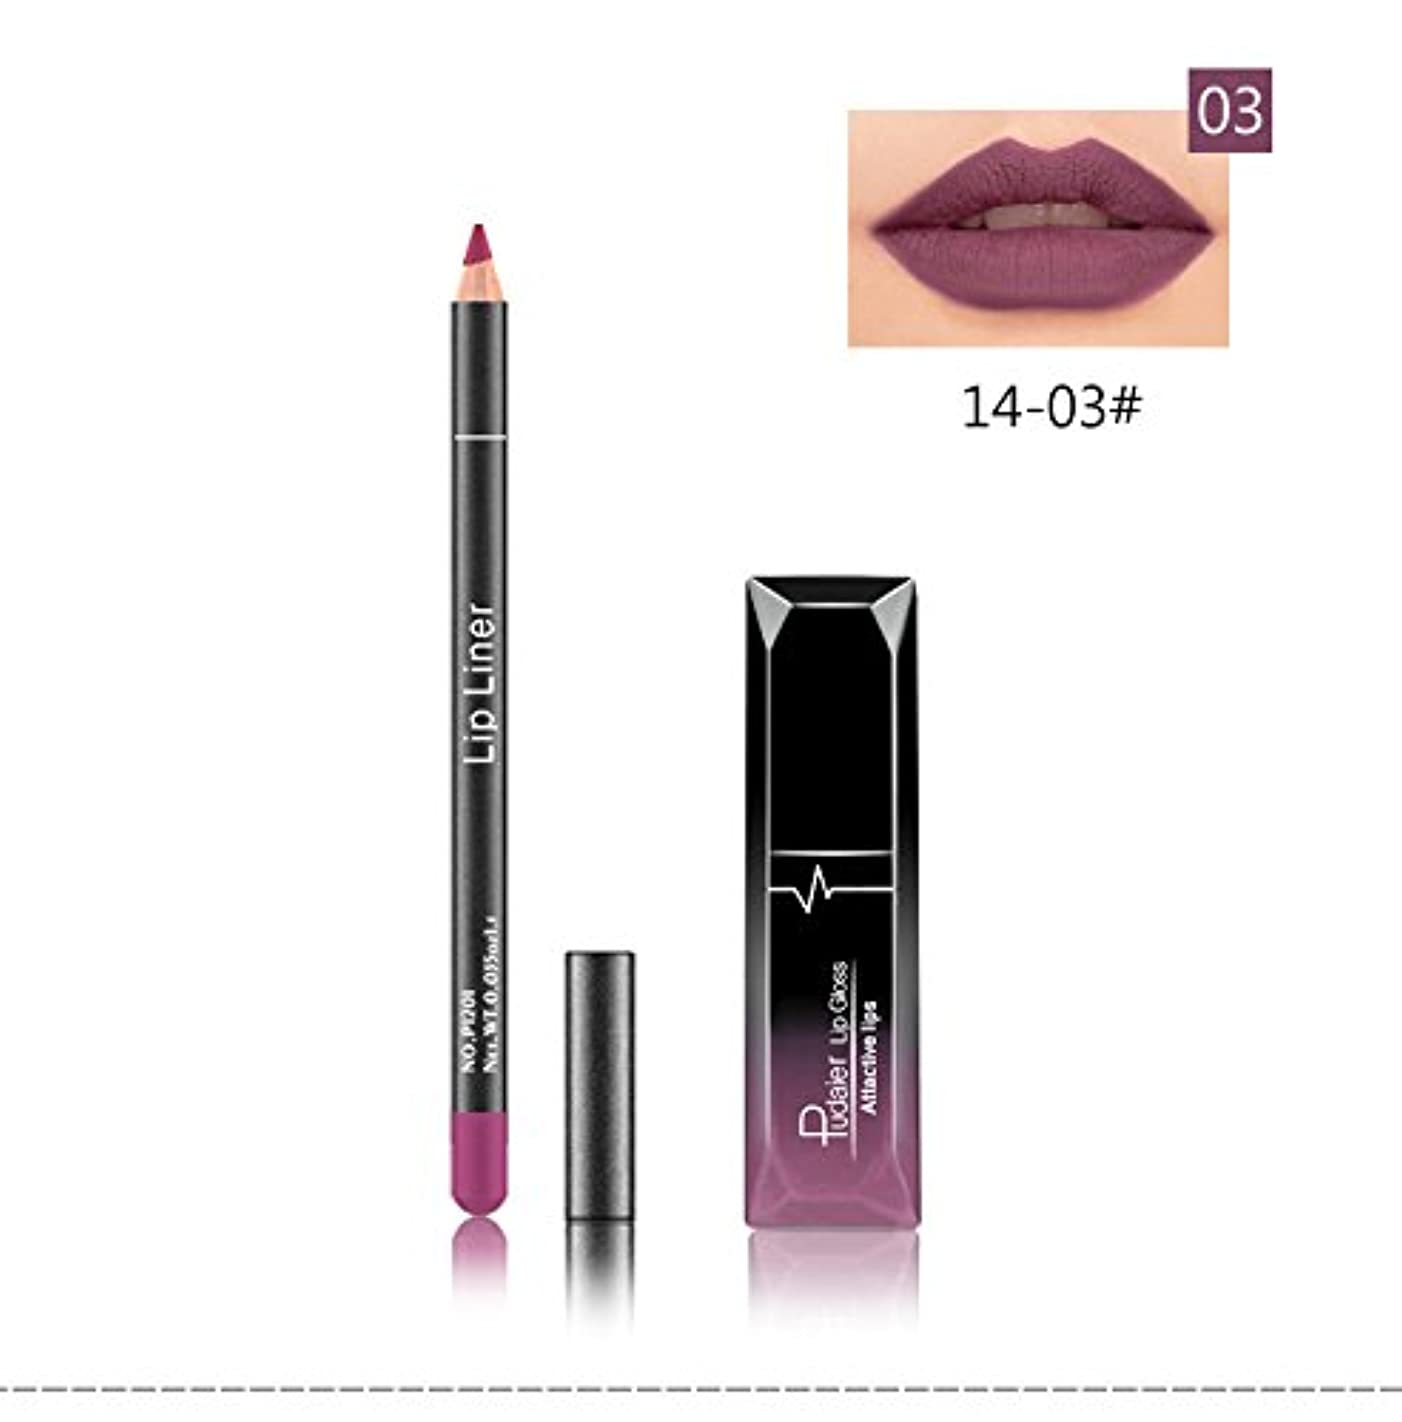 (03) Pudaier 1pc Matte Liquid Lipstick Cosmetic Lip Kit+ 1 Pc Nude Lip Liner Pencil MakeUp Set Waterproof Long...